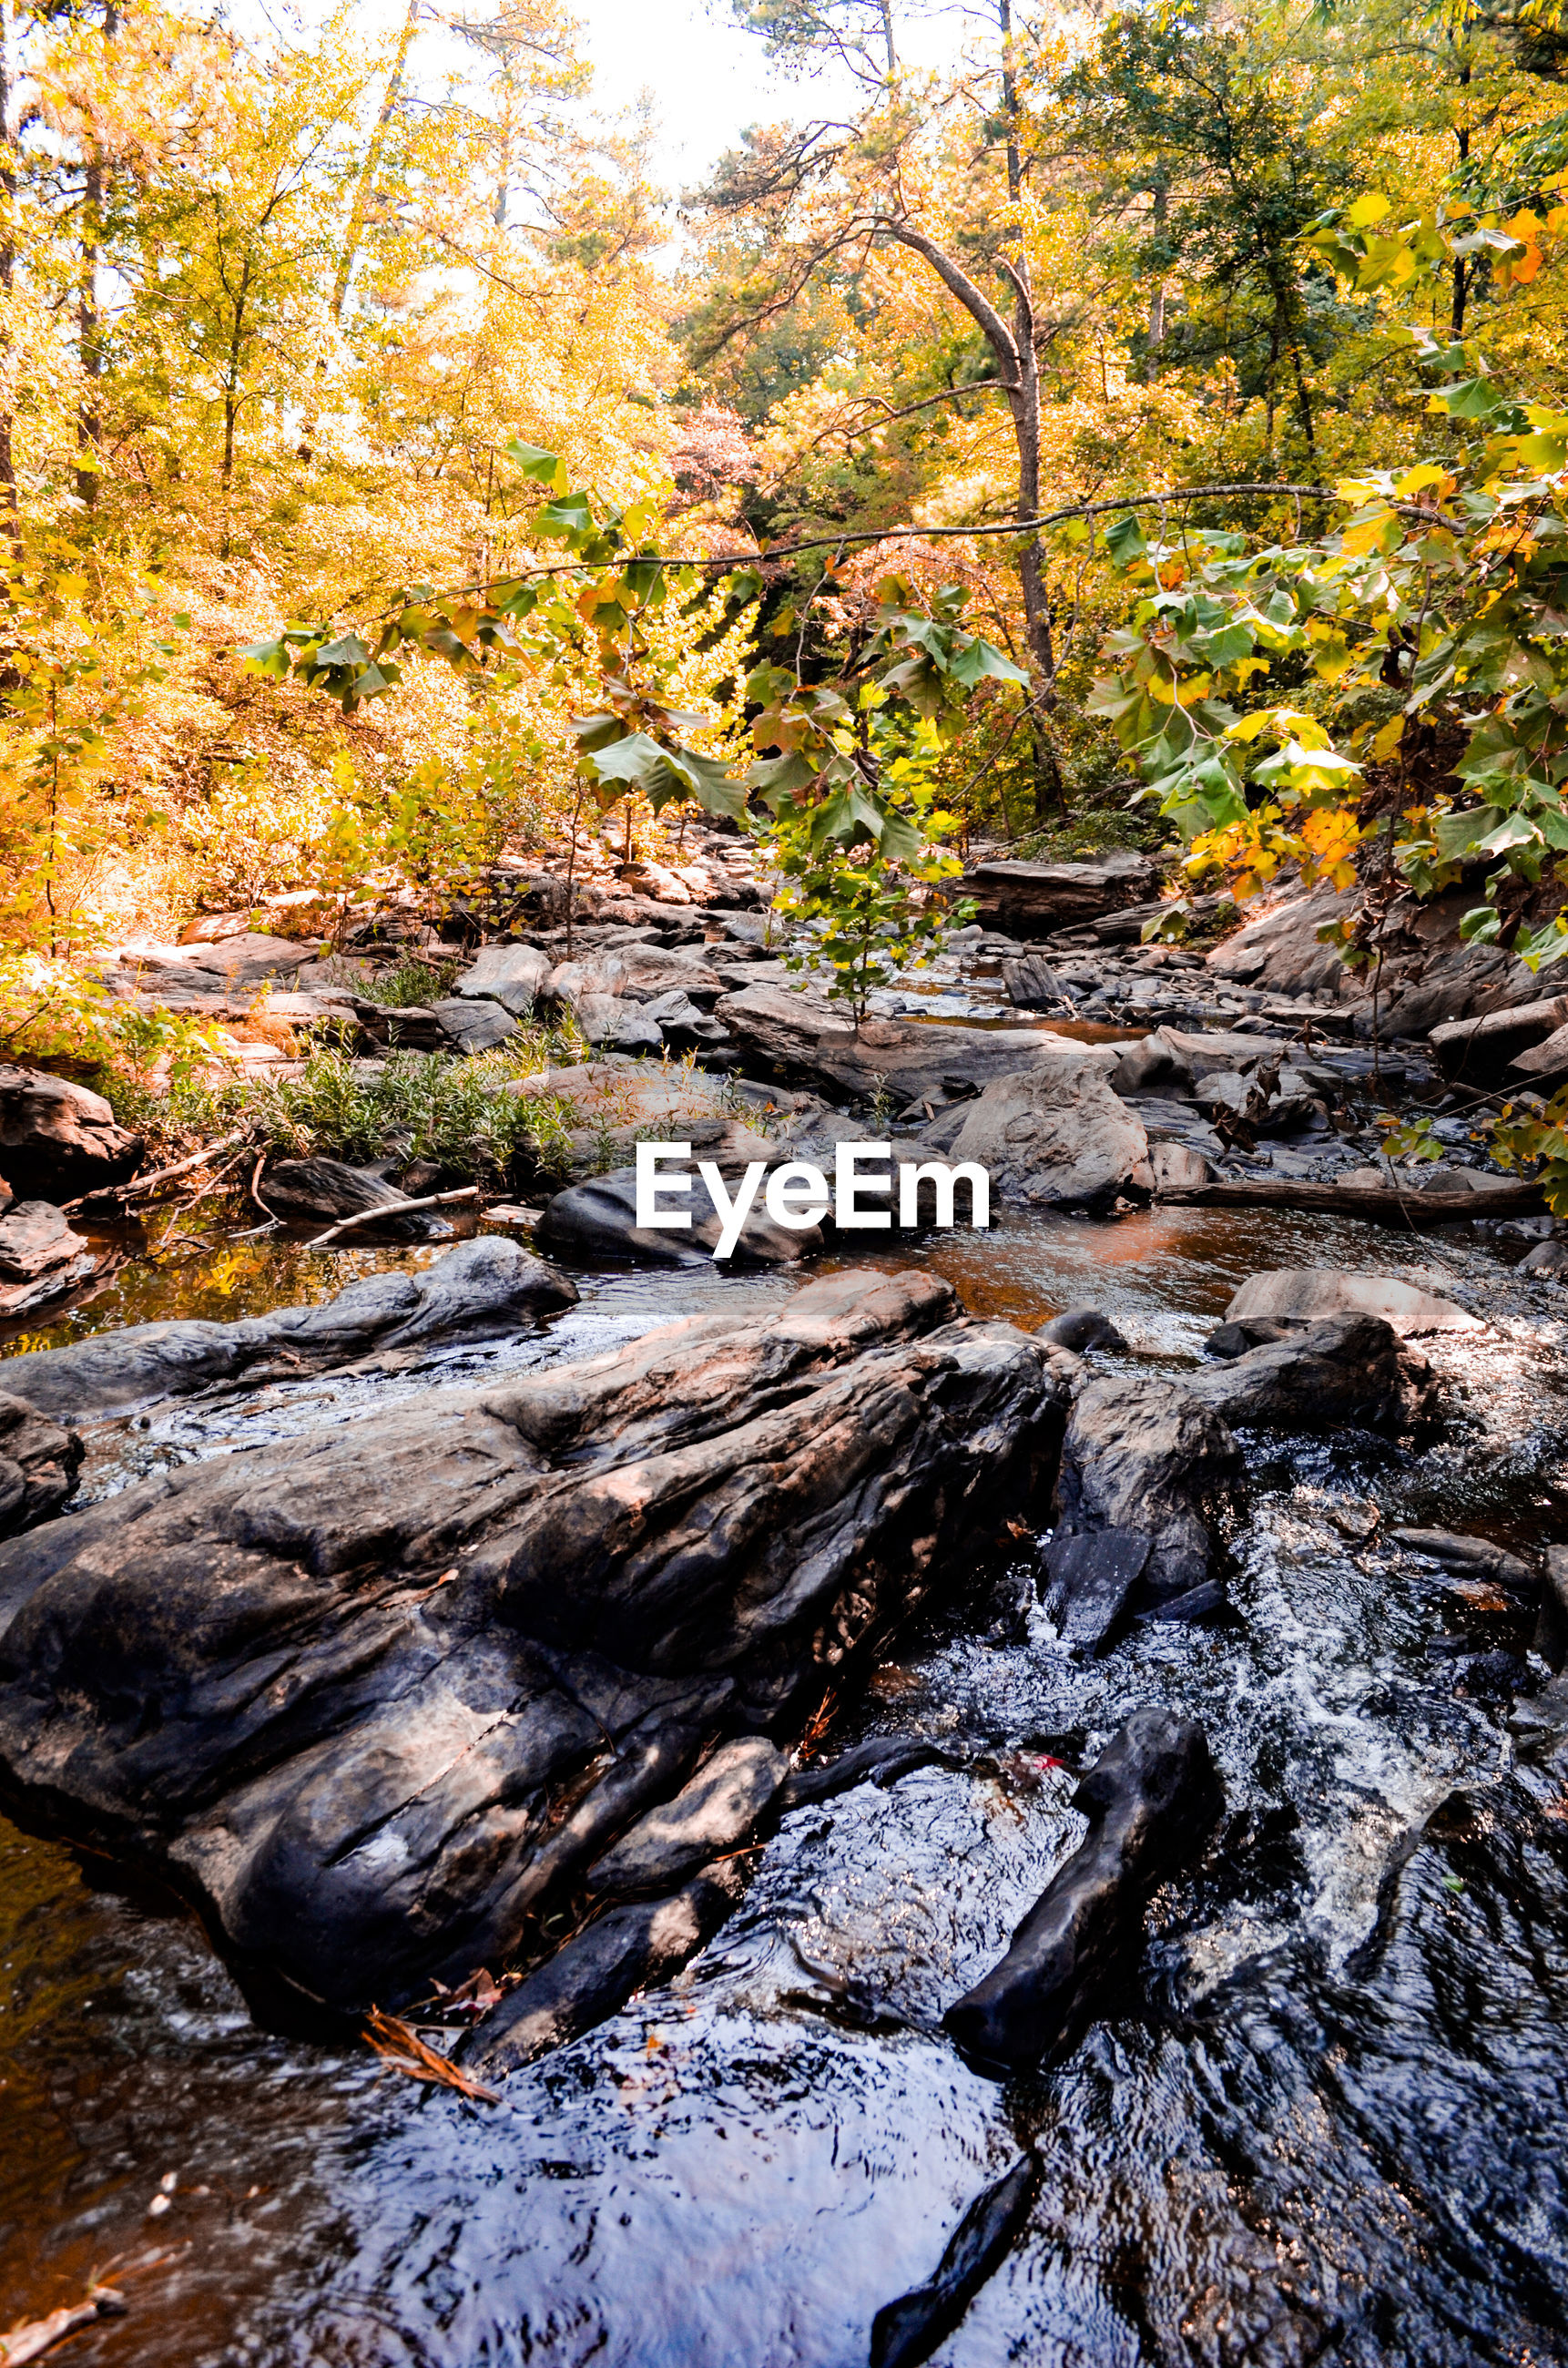 nature, tree, autumn, rock - object, forest, tranquil scene, tranquility, no people, beauty in nature, stream, scenics, outdoors, stream - flowing water, day, landscape, water, leaf, travel destinations, motion, waterfall, hot spring